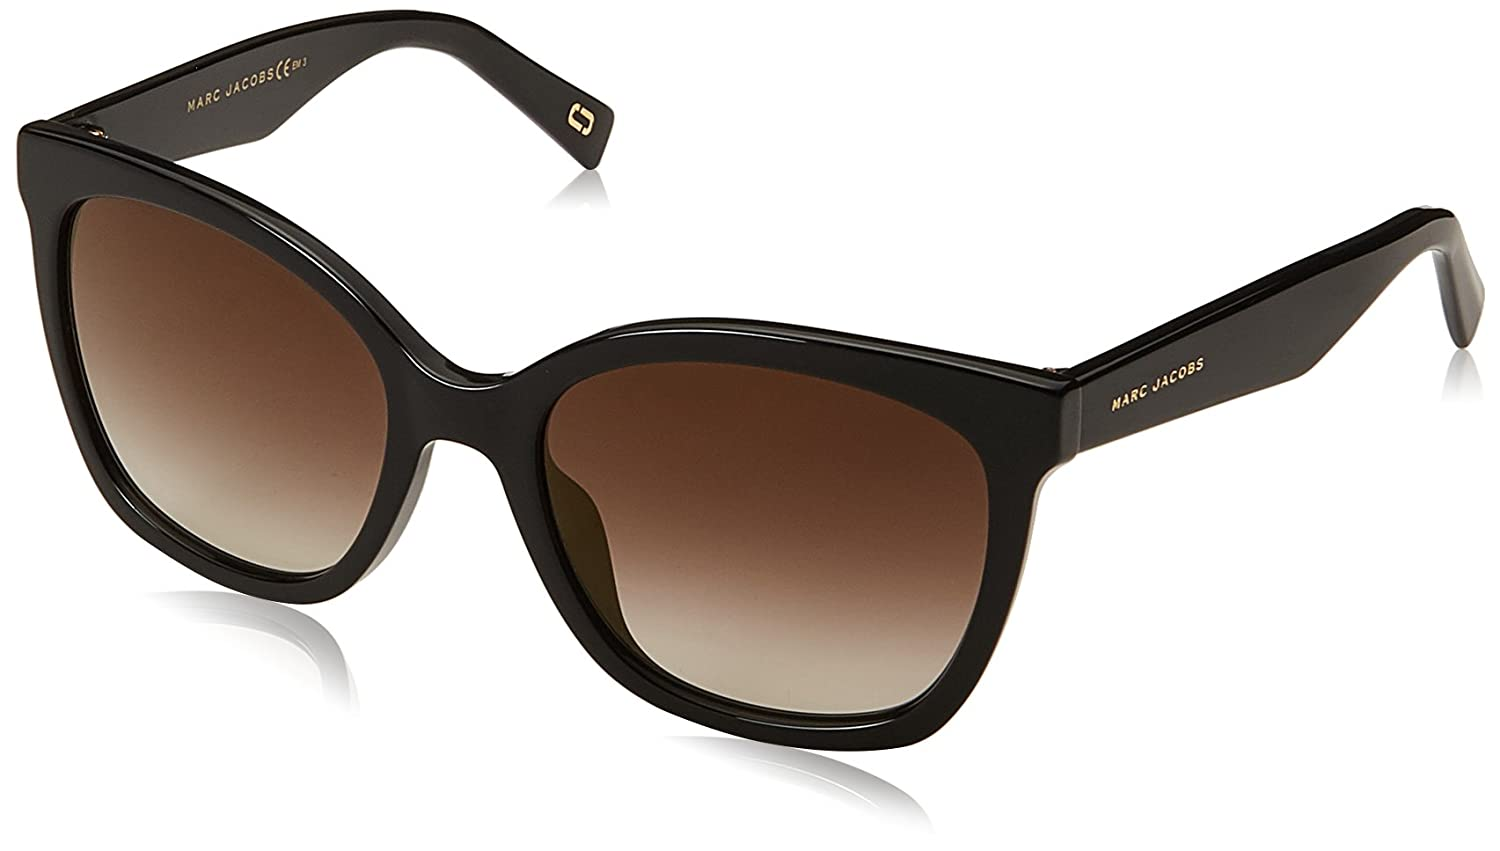 Marc Jacobs Marc 310/S 08 Gafas, Black/BW Brown, 54 Mujeres ...